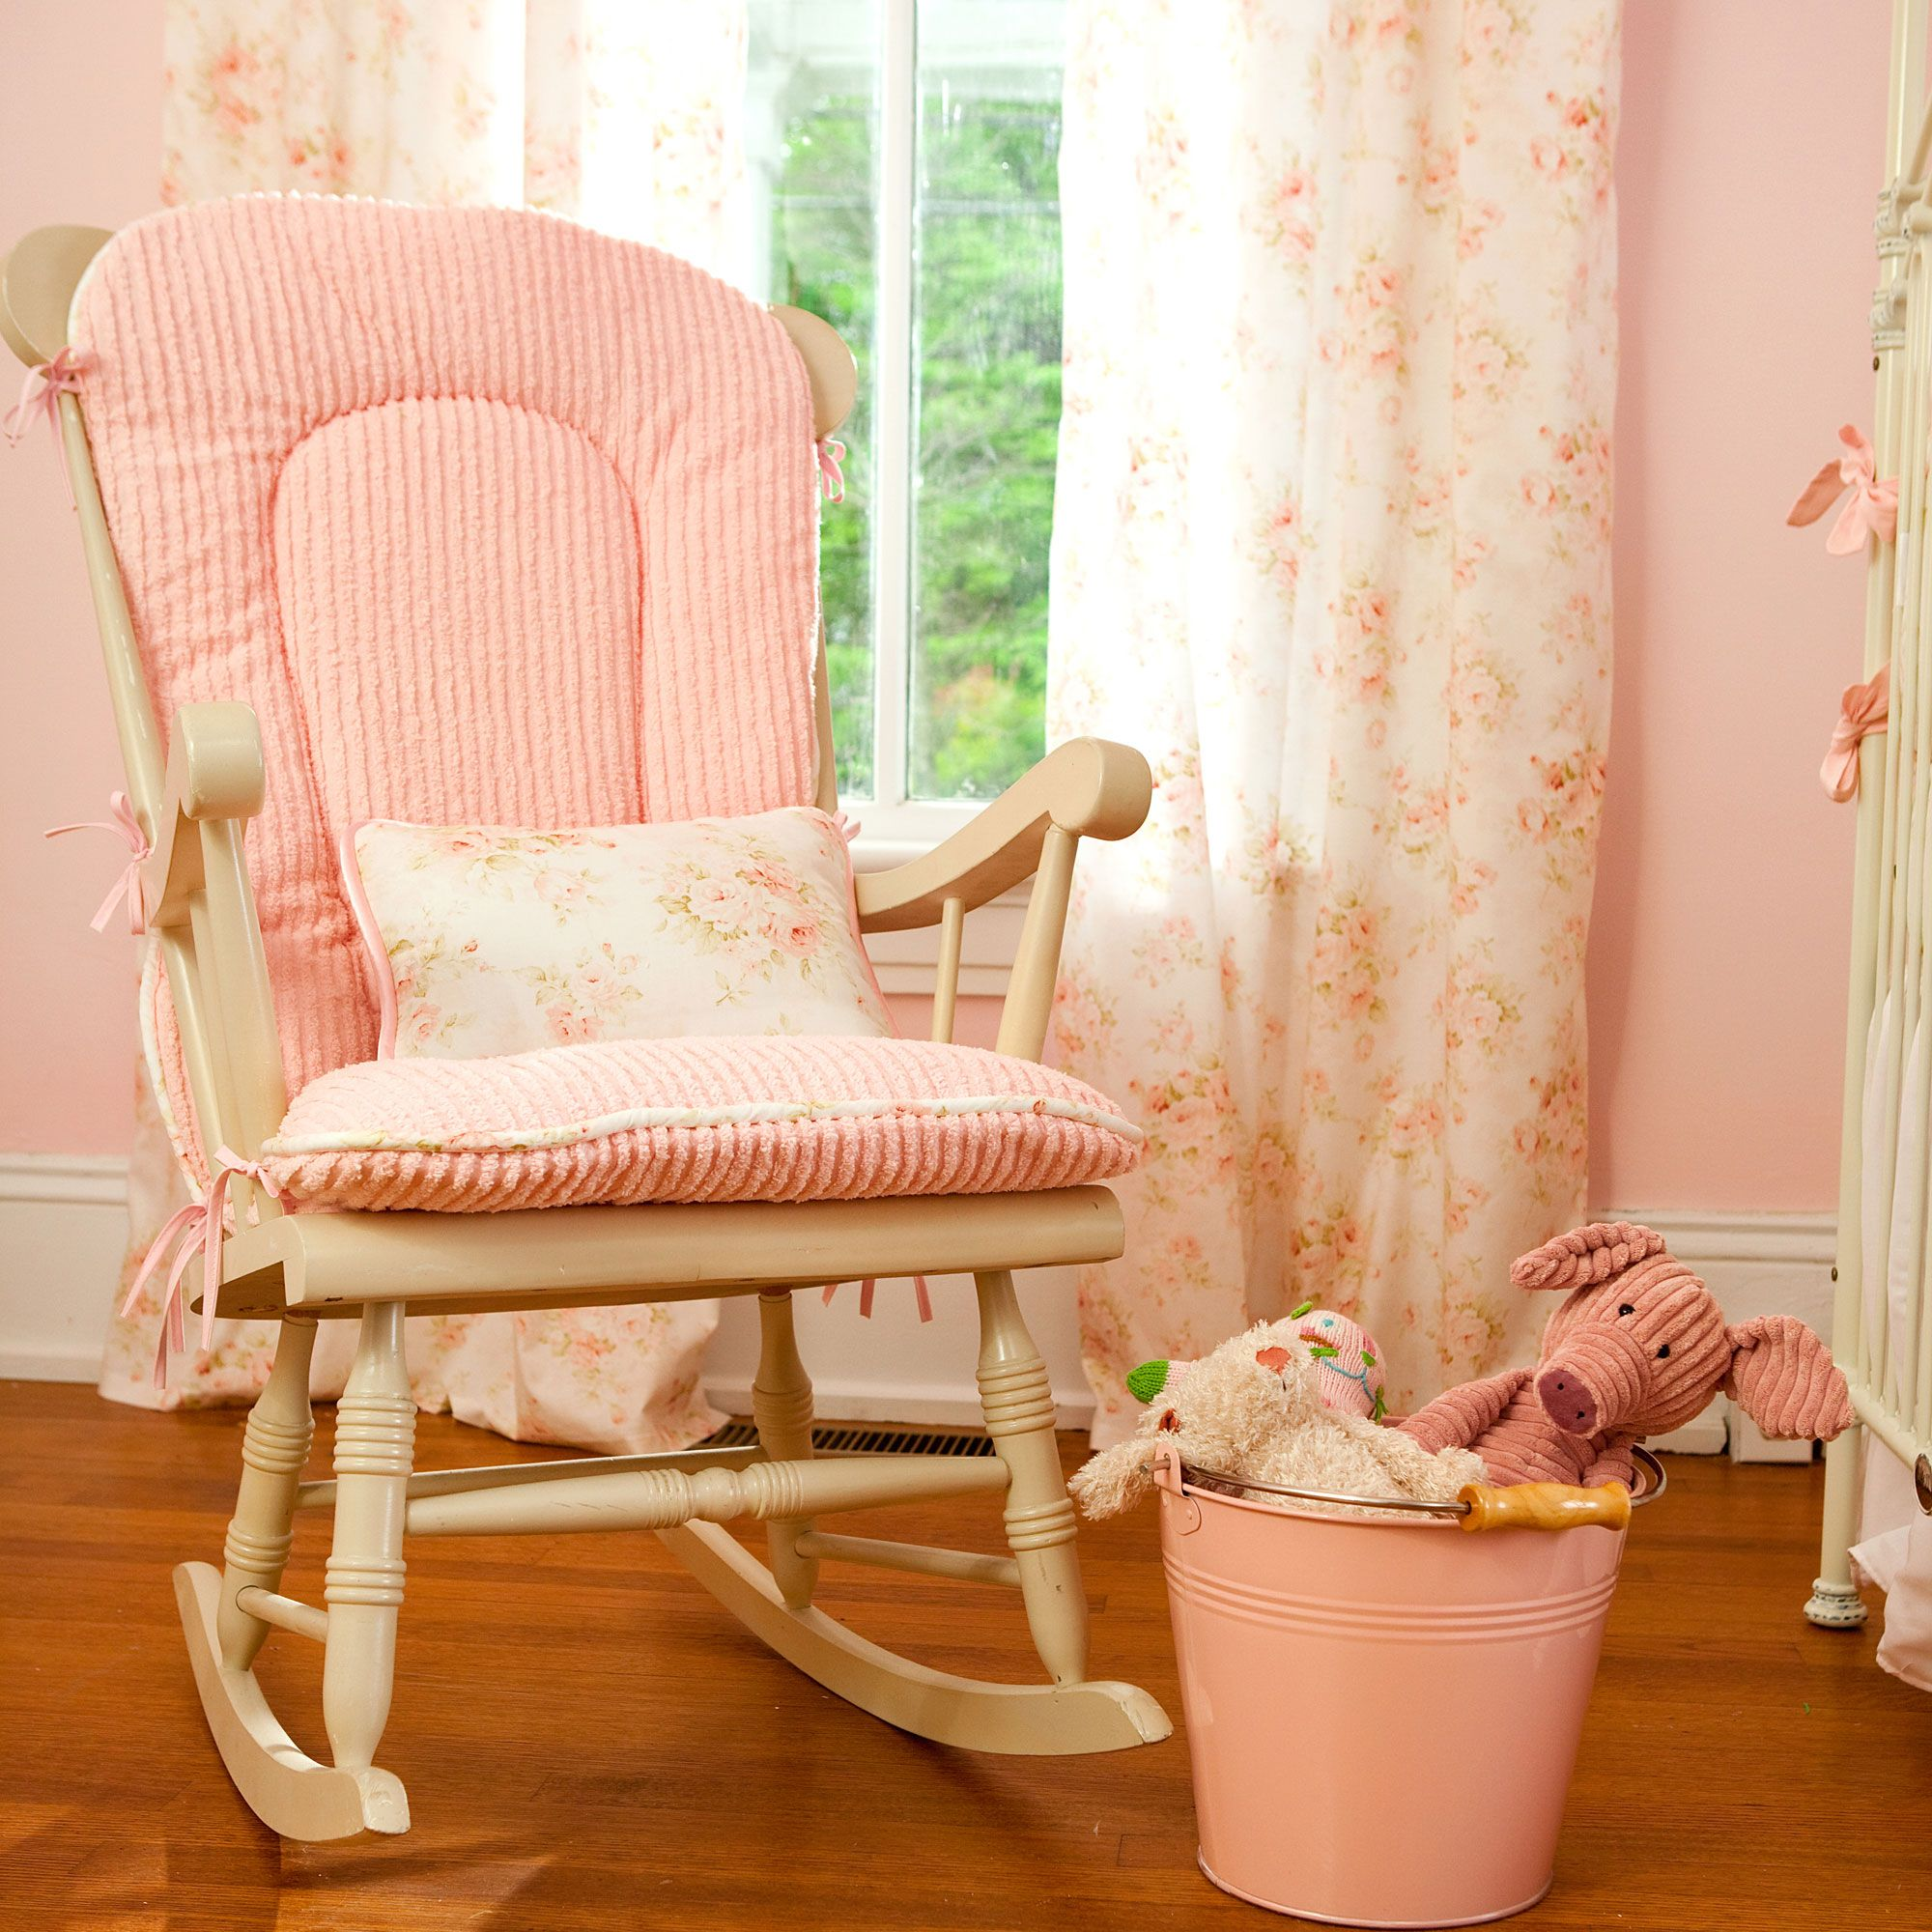 48 Best Rocking Chair Cushions Images On Pinterest | Recliners, Rocking  Chair Cushions And Rocking Chair Pads